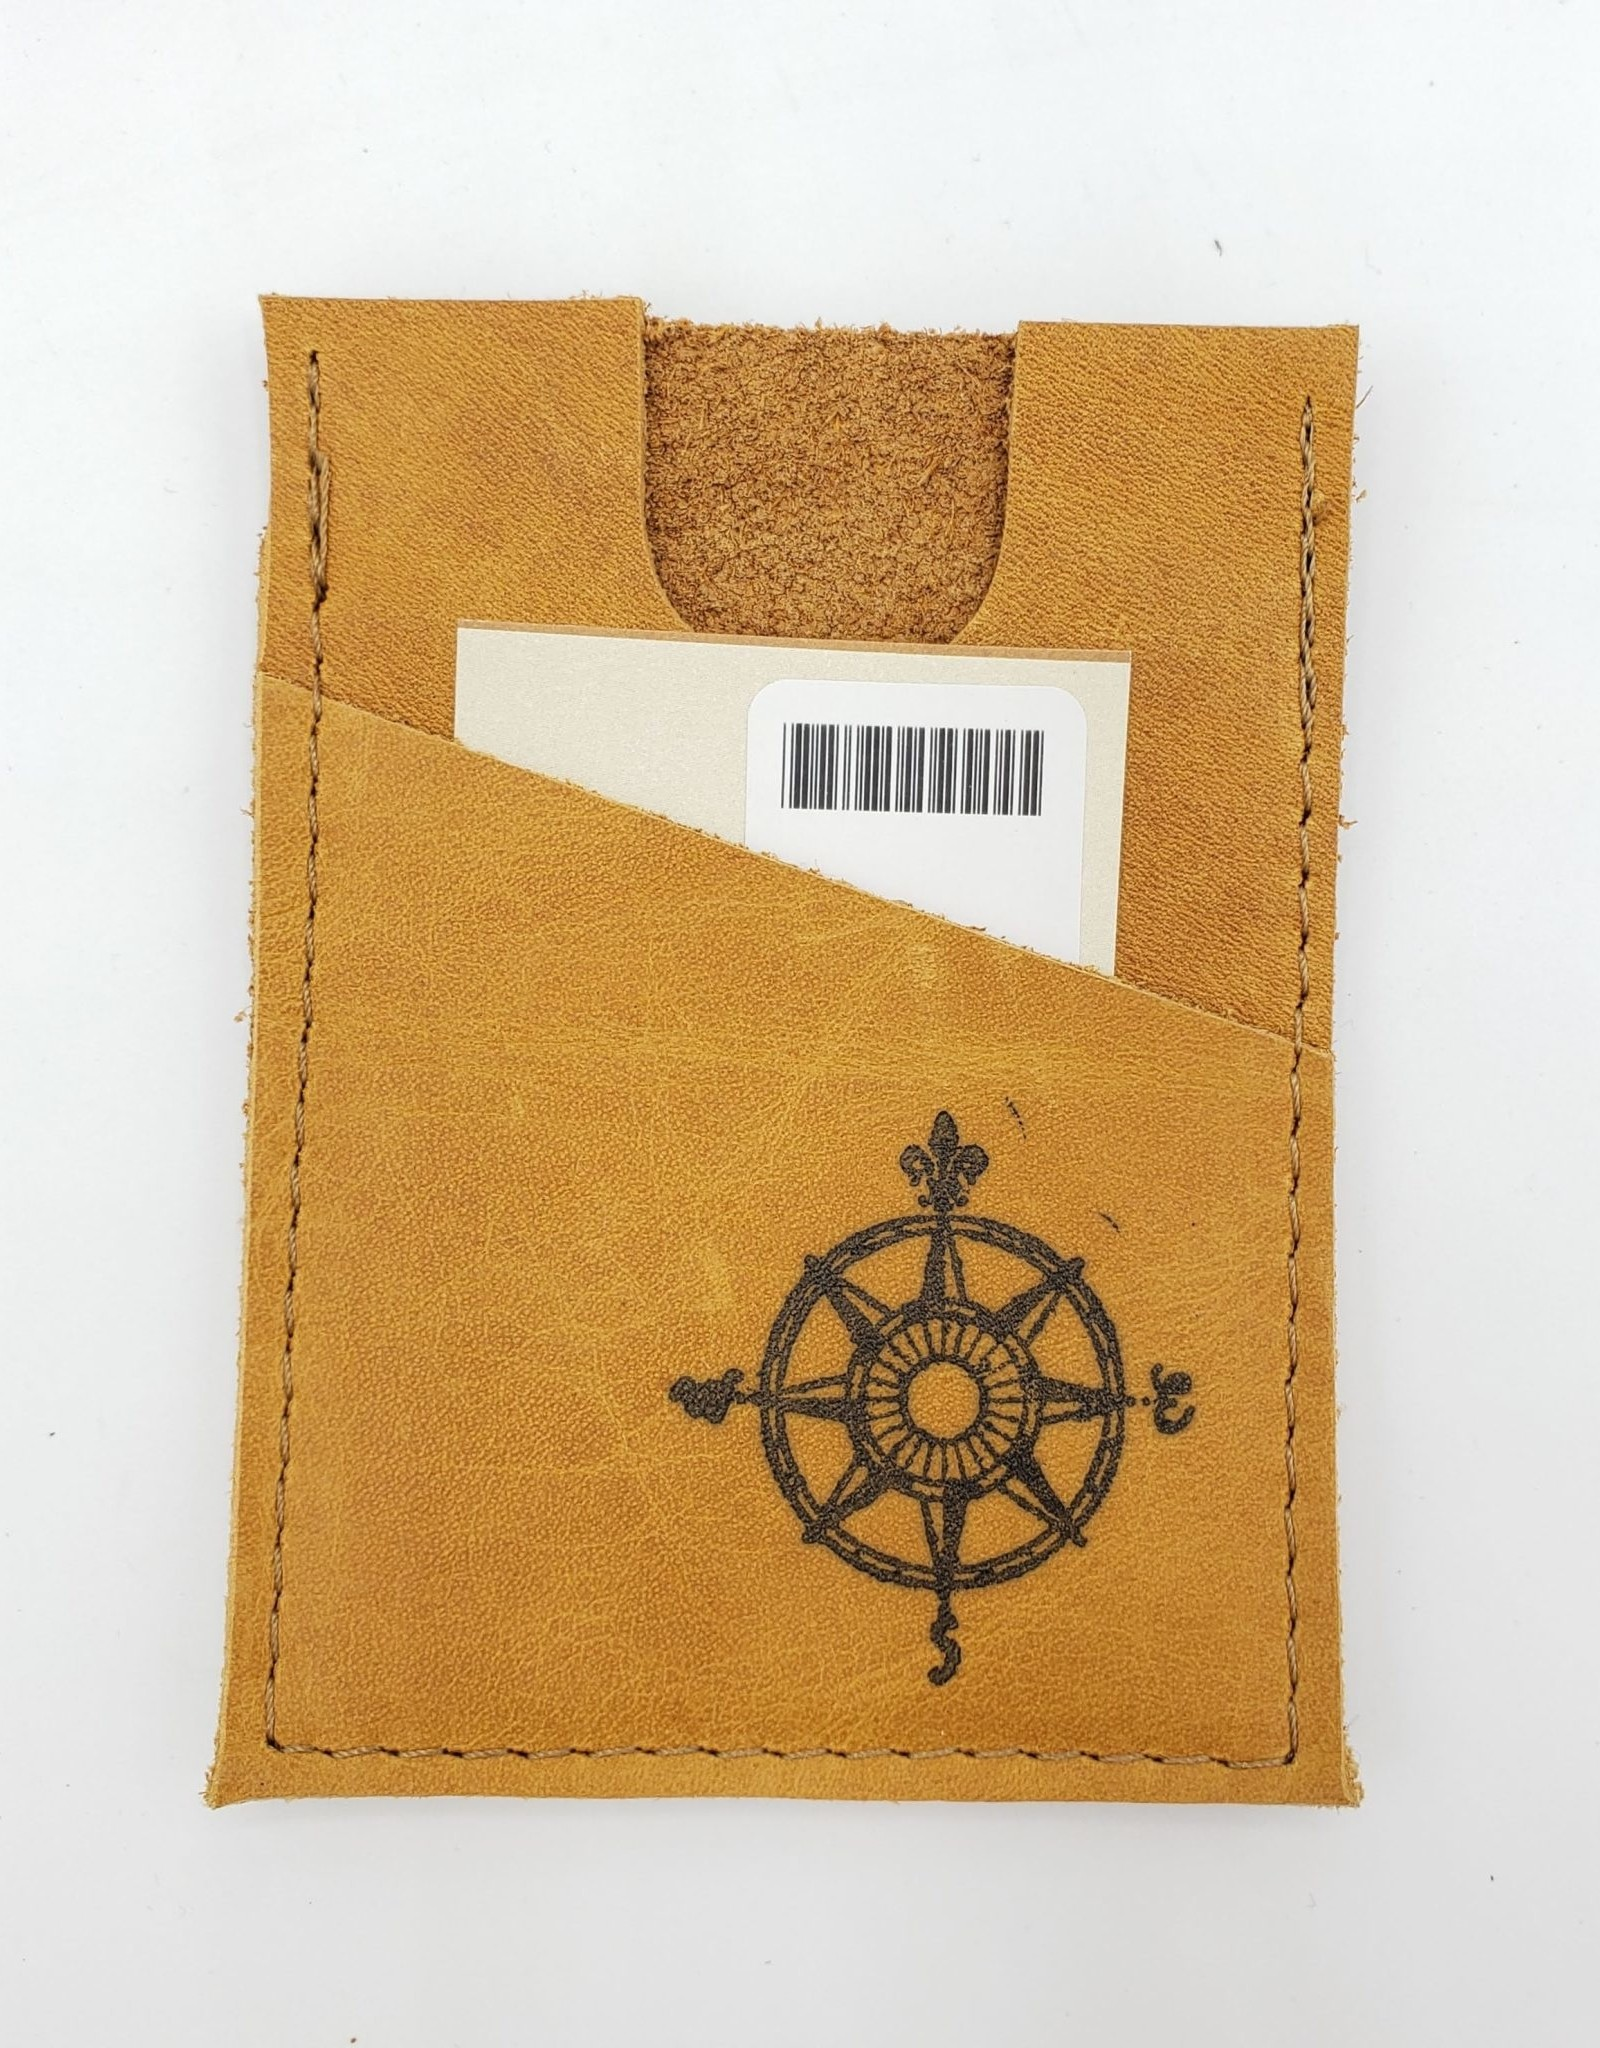 In Blue Handmade Compass - Train Ticket & Card Leather Wallet